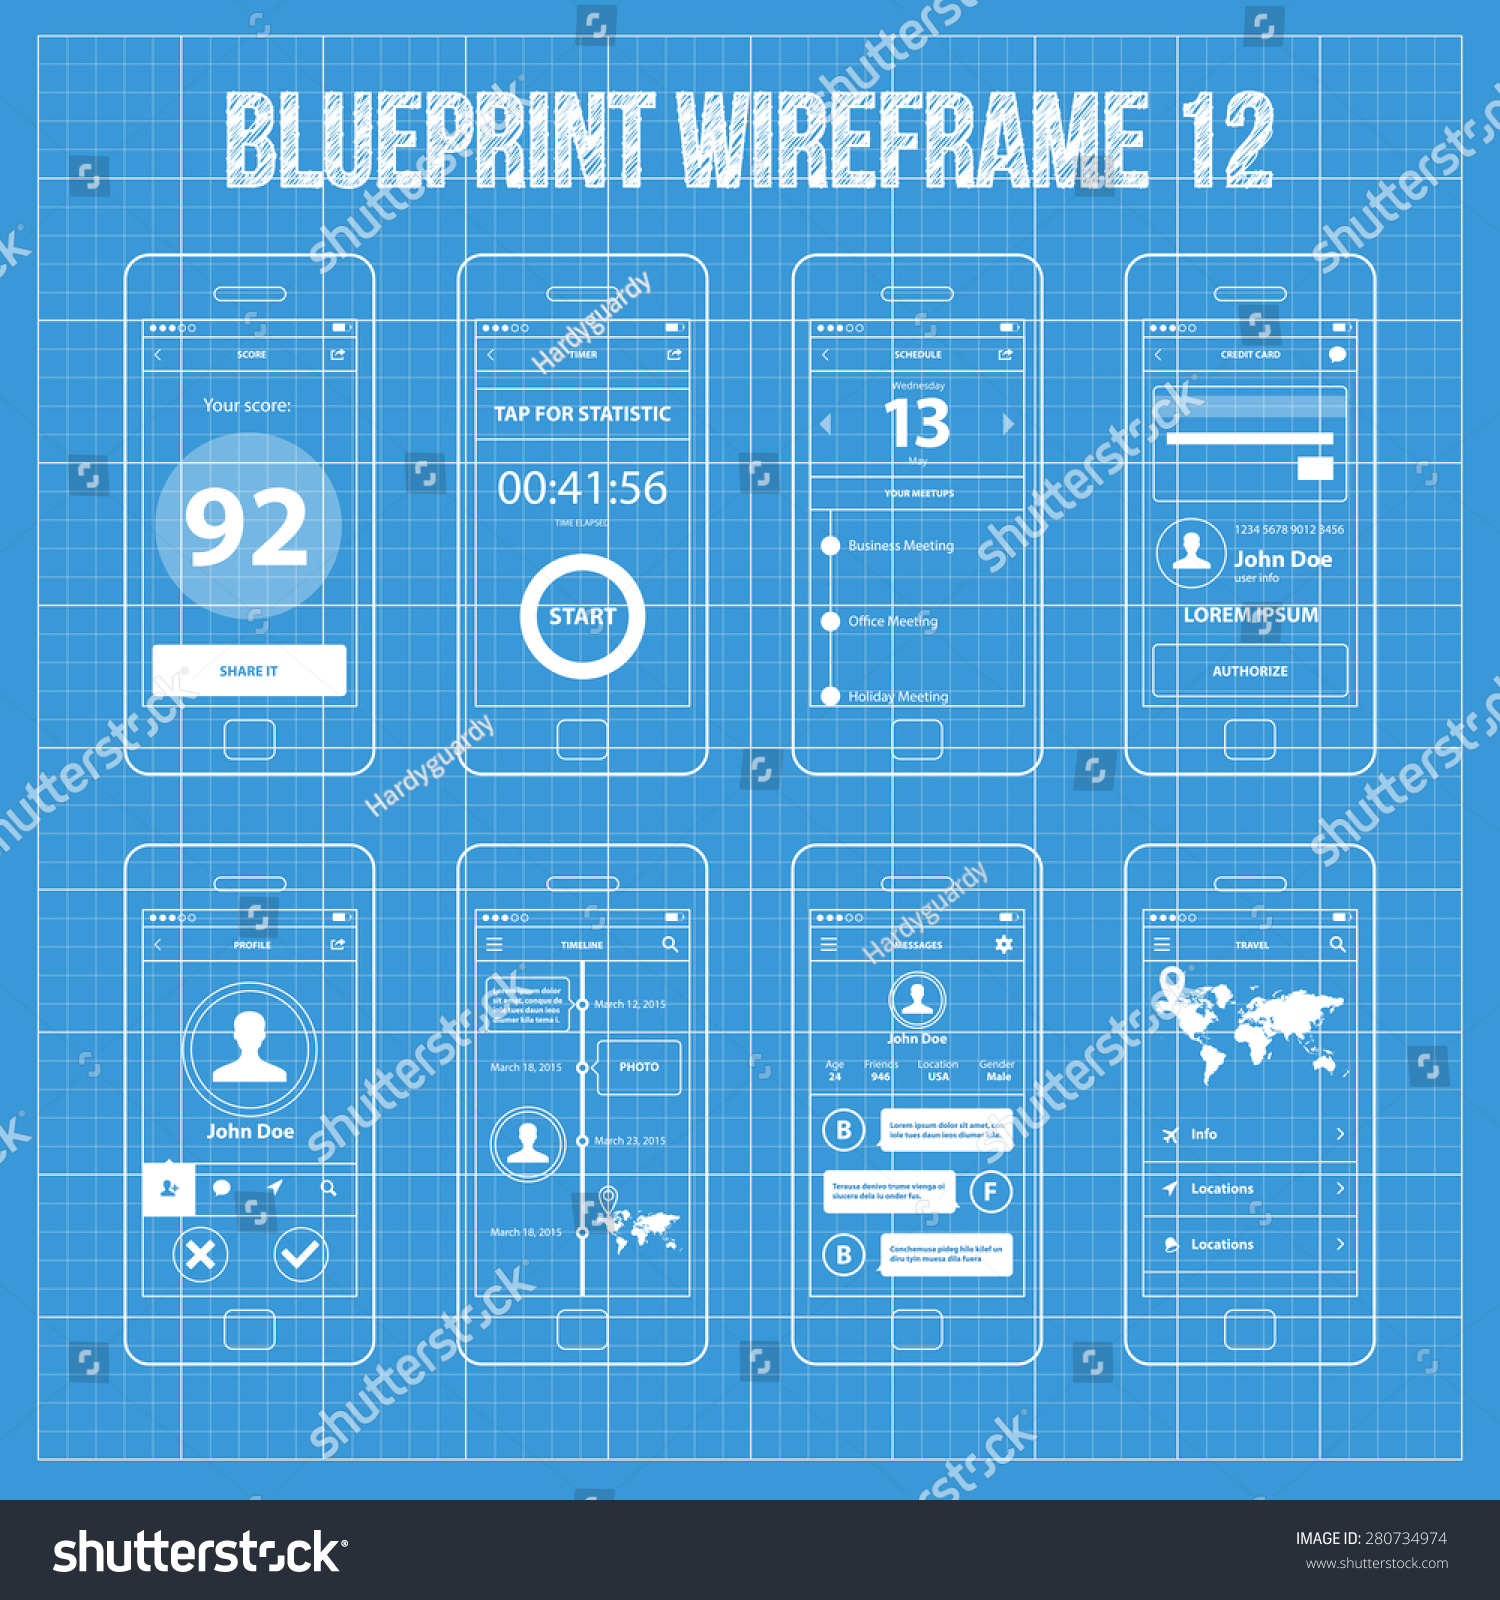 Royalty free mobile app wireframe blueprint ui kit 280734974 stock mobile app wireframe blueprint ui kit 12 score screen timer screen schedule screen malvernweather Images